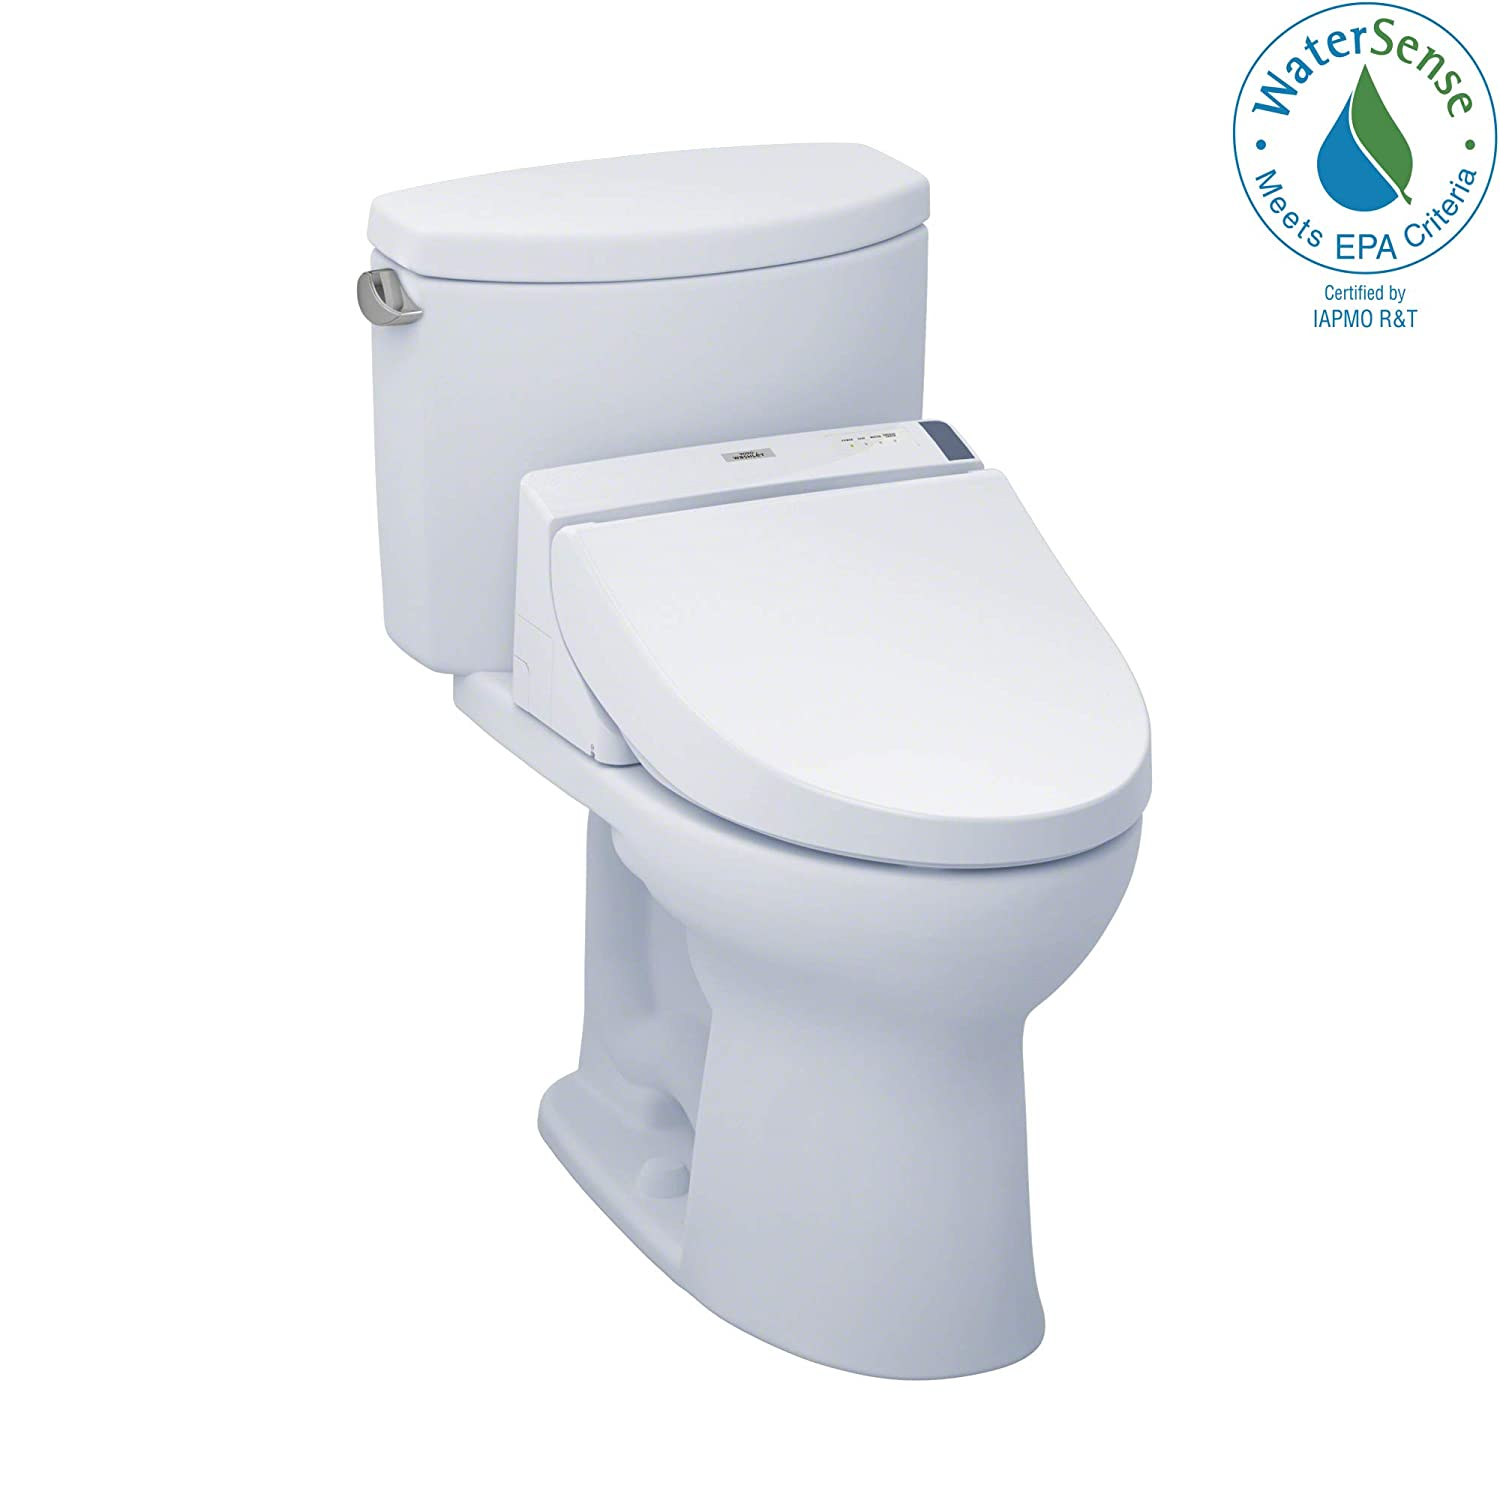 TOTO MW4542044CEFG#01 C200 WASHLET+ Kit, Drake II Elongated 1.28 GPF